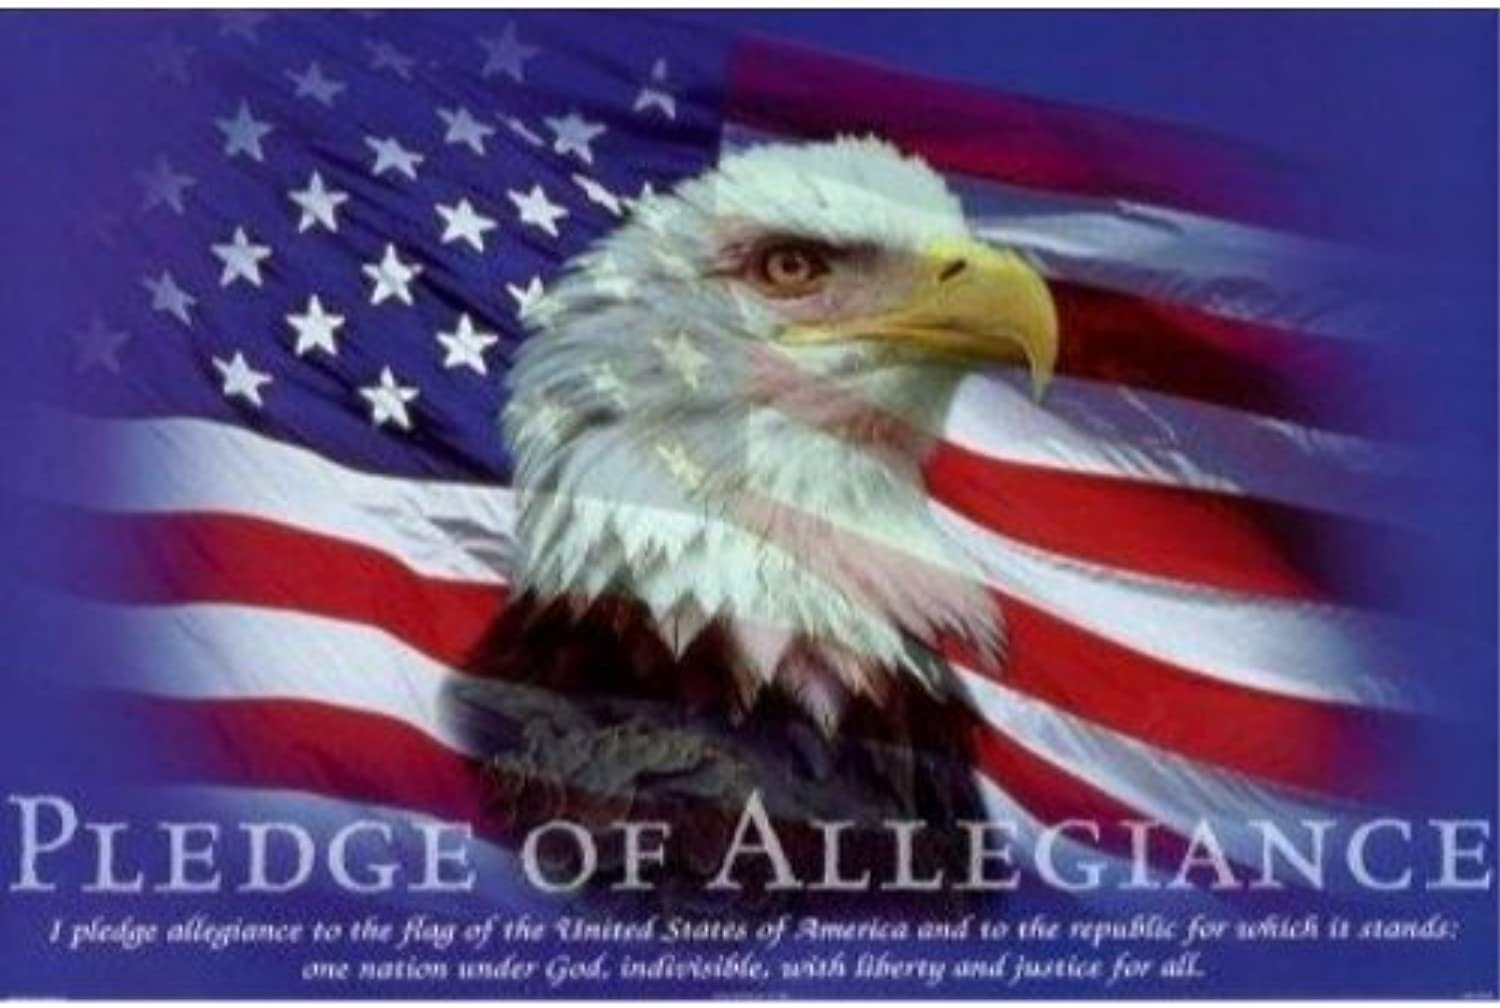 Buyartforless Pledge of Allegiance Giclee Edition by Bob Downs 36x24 Art Print Bald Eagle American Flag Patriotism